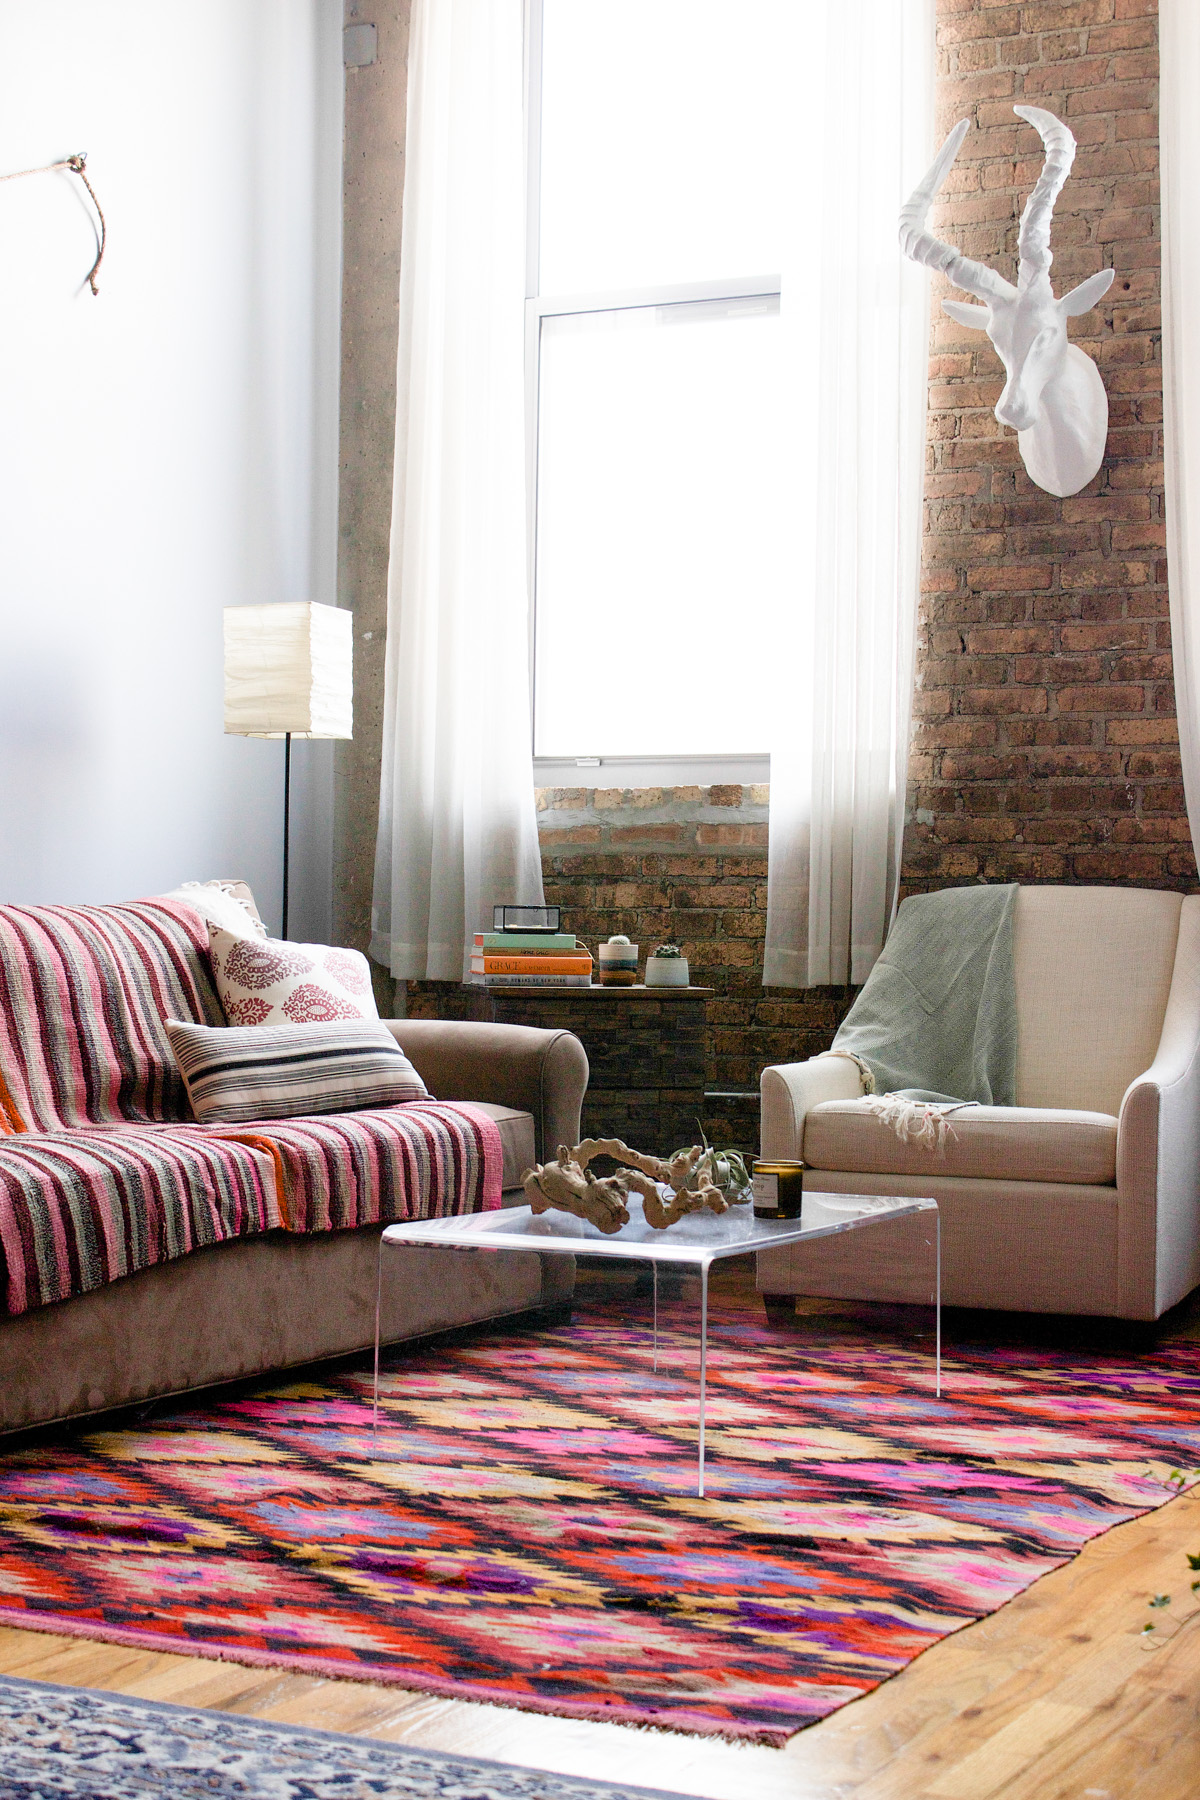 A Colorful Home in An Old Chicago Calculator Factory, Design*Sponge